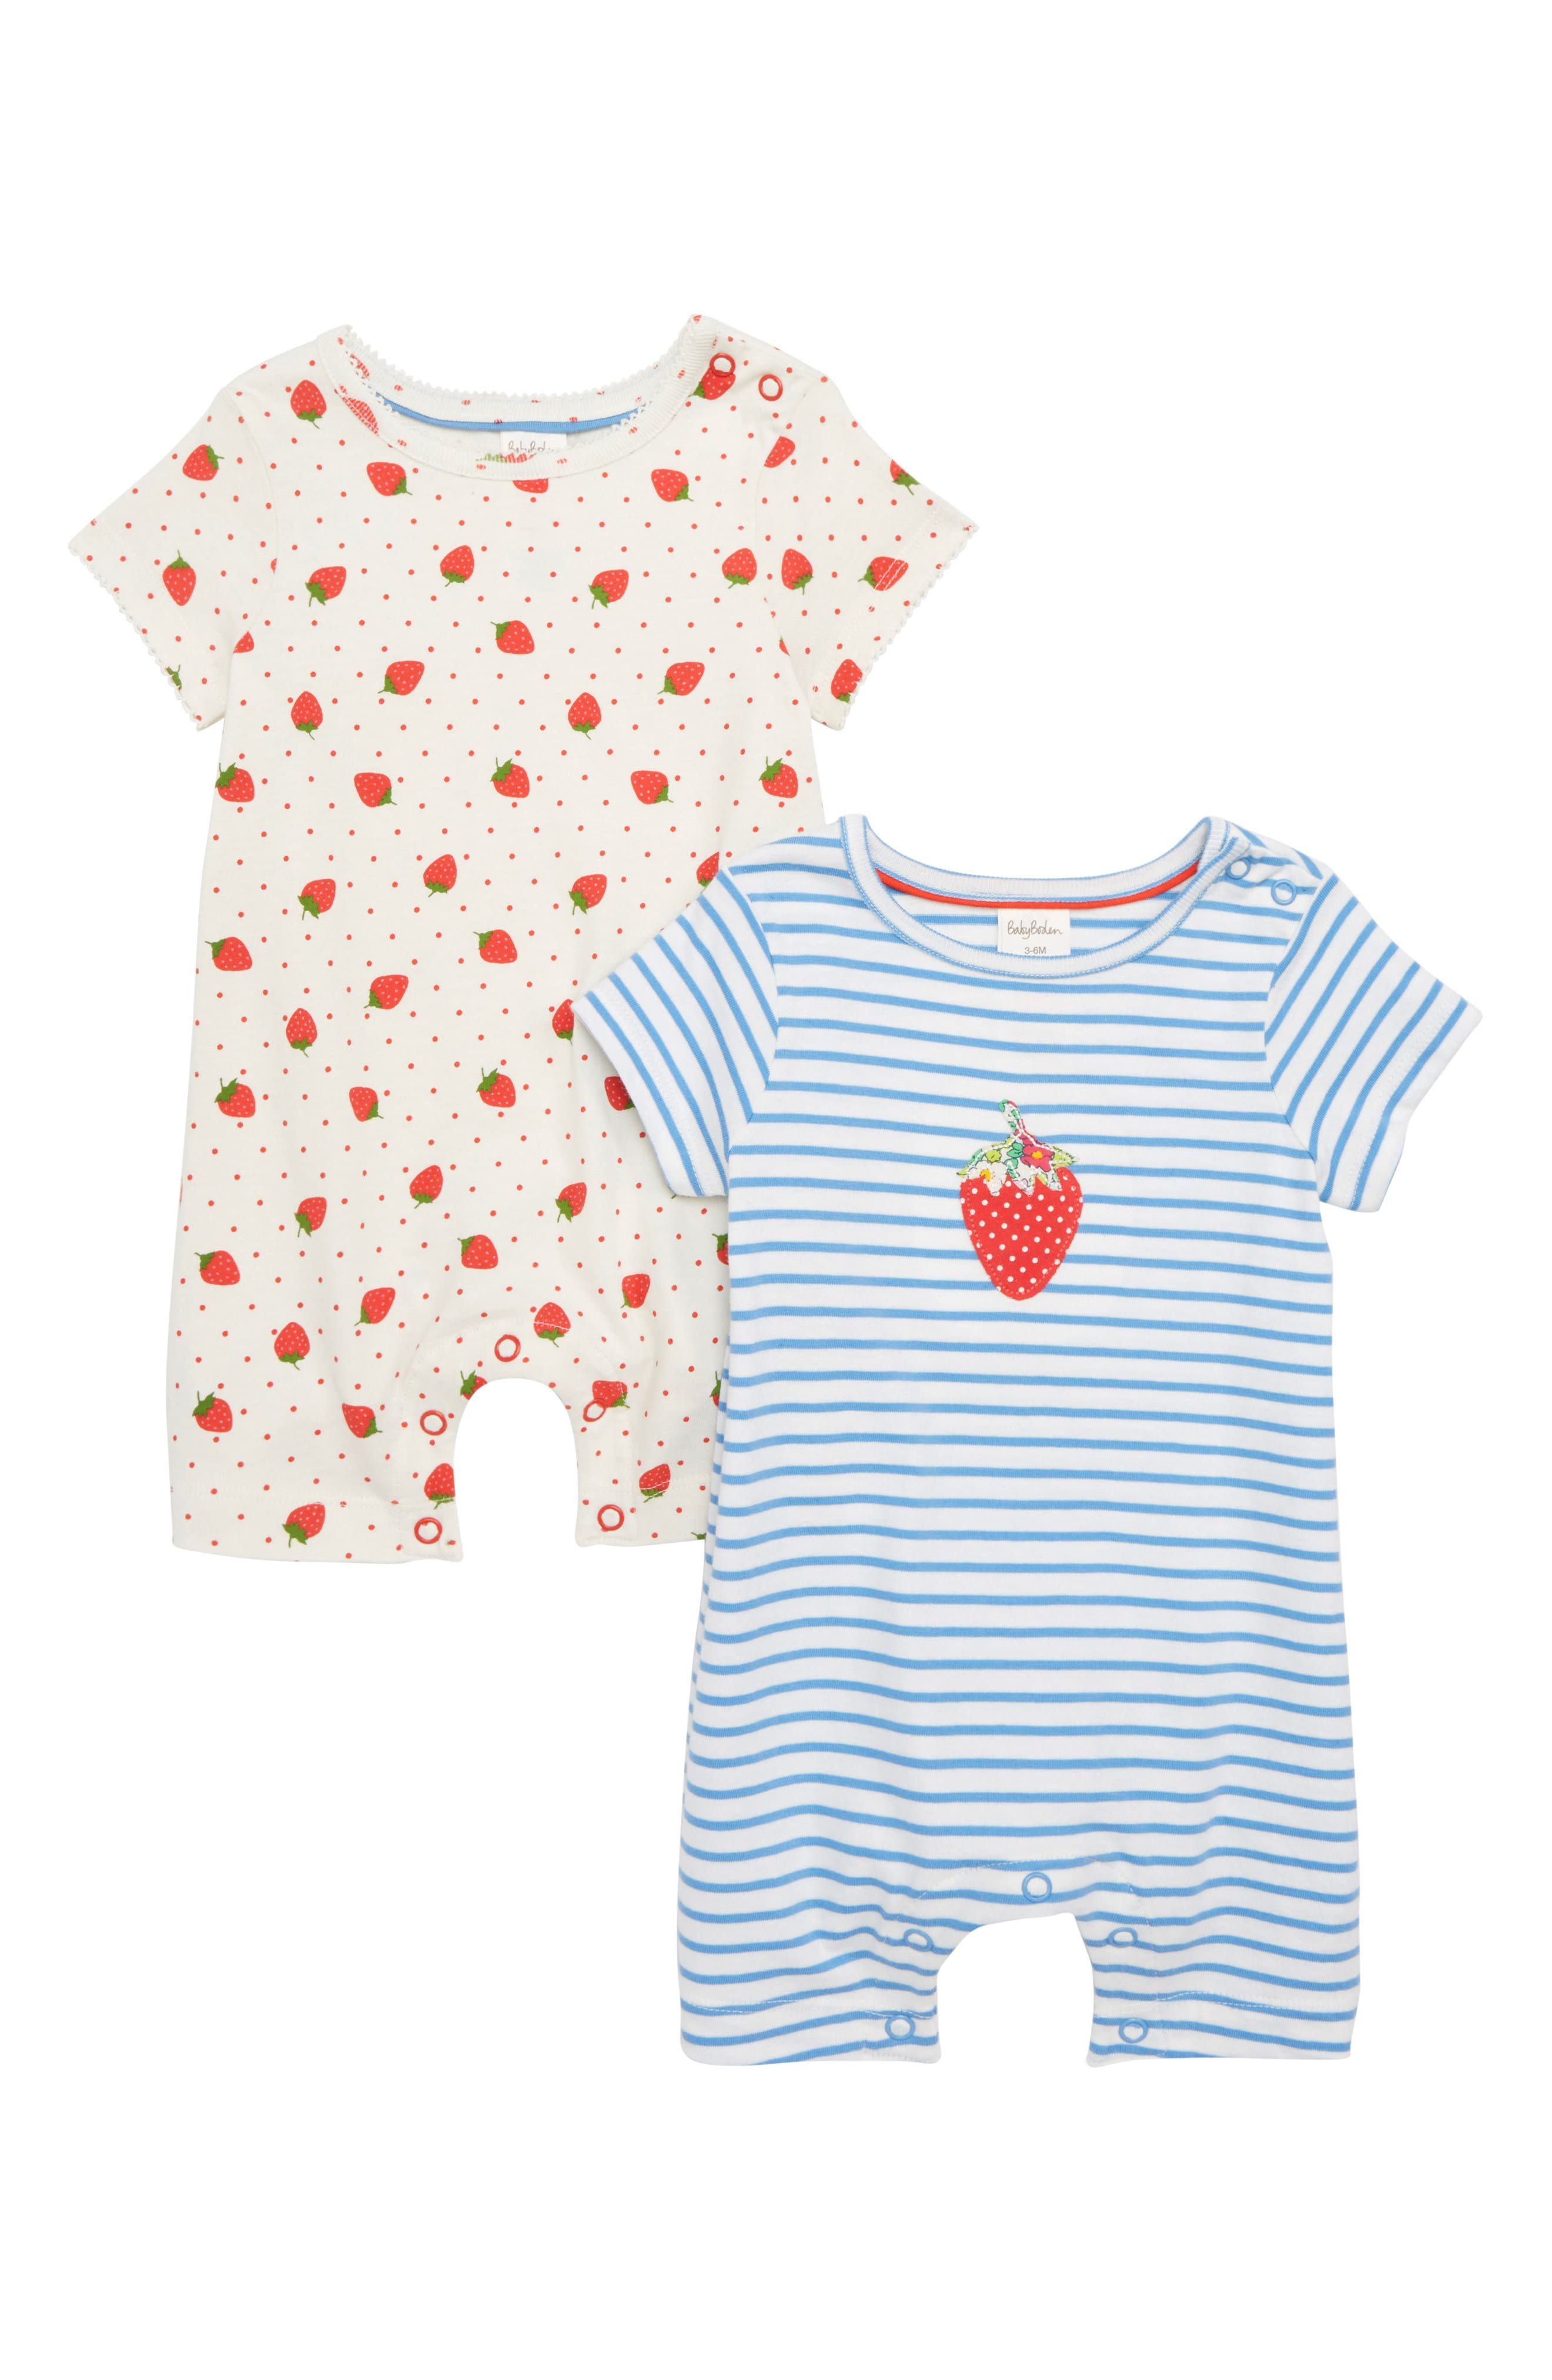 Summer 2-Pack Rompers,                             Main thumbnail 1, color,                             Rosehip/ Red Strawberry